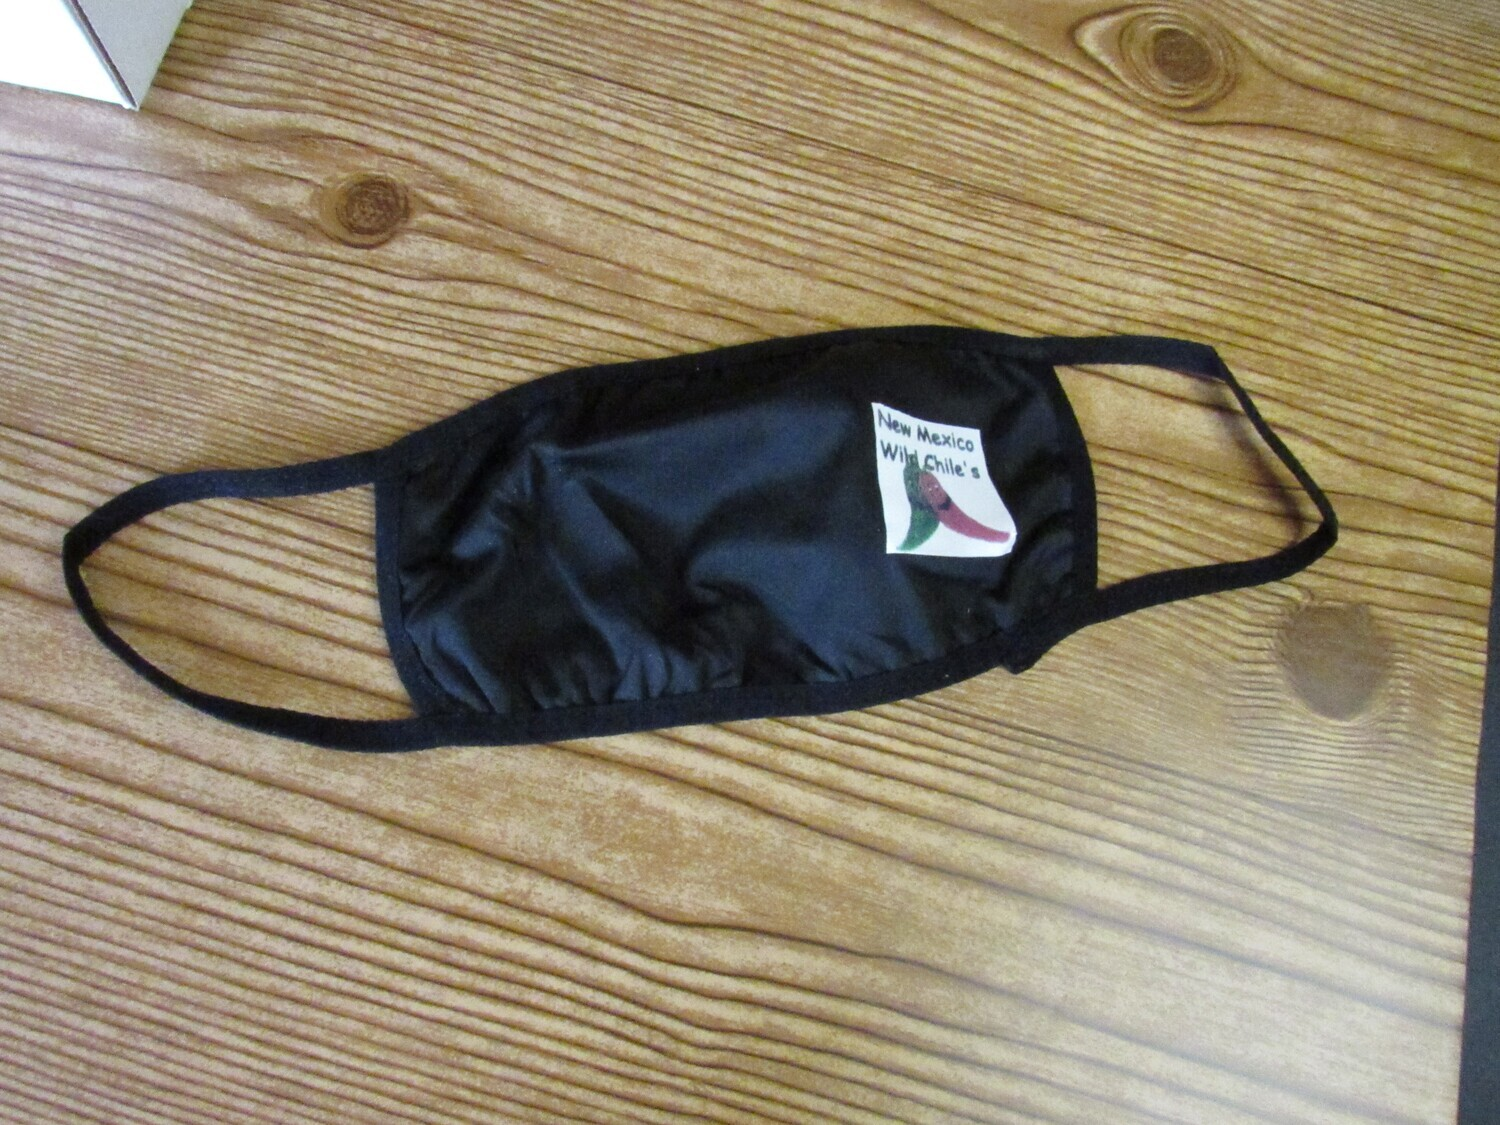 New Mexico WIld Chiles Mask